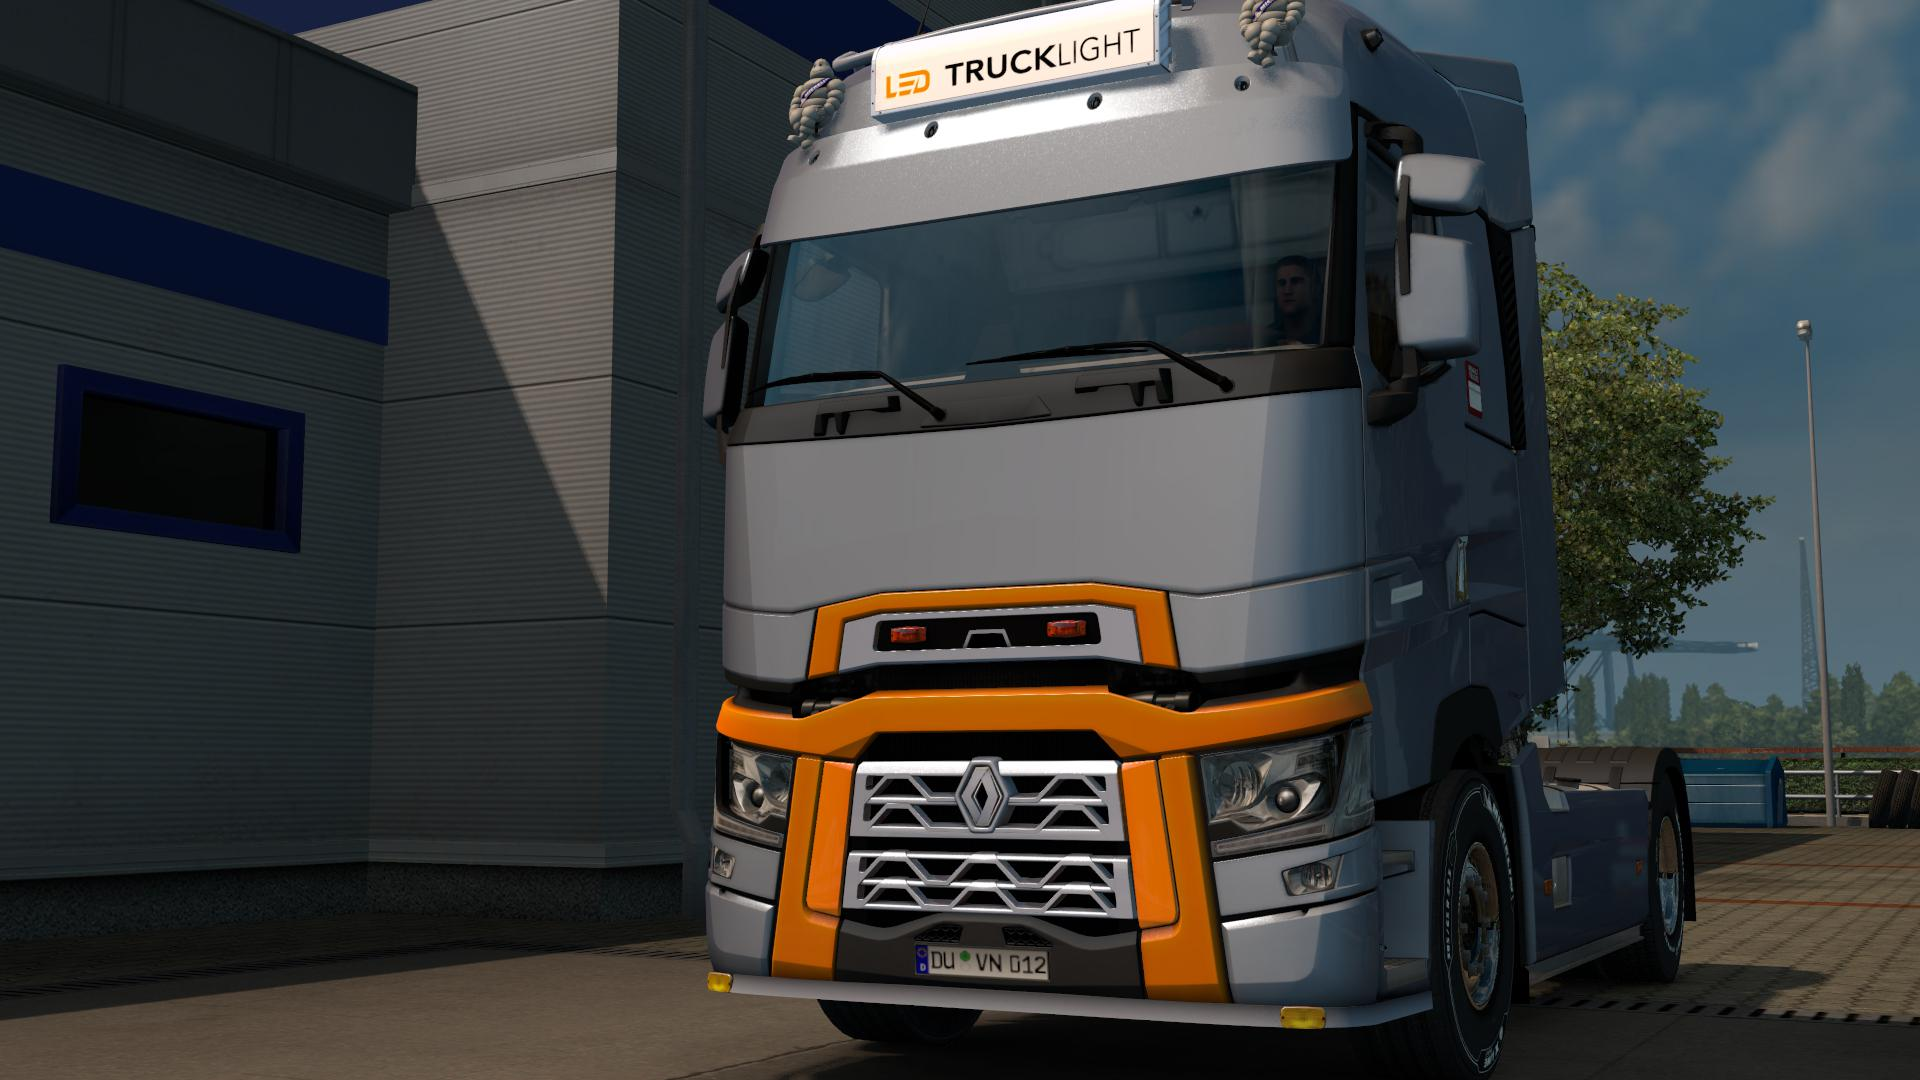 ETS2 - Led Trucklight V6.0 (1.35.X)